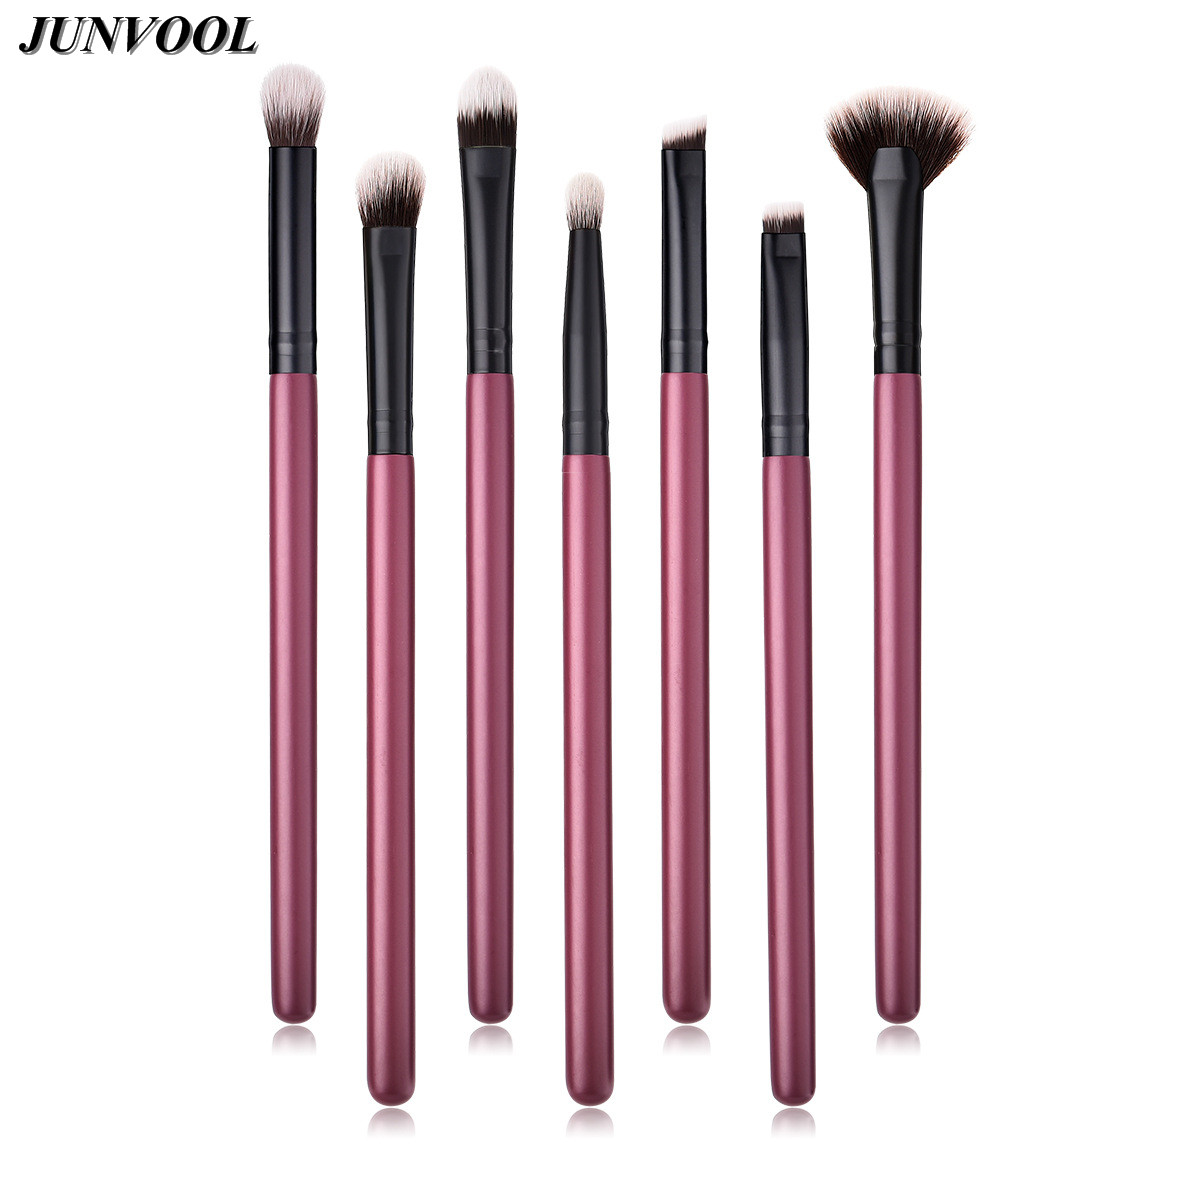 7pcs Nylon Hair Eye Makeup Brushes Set Professional Eye Shadow Eyebrow Lip Makeup Tool Shader Concealer Blending Mini Fan Brush 15 pcs nylon face eye lip makeup brush set page 3